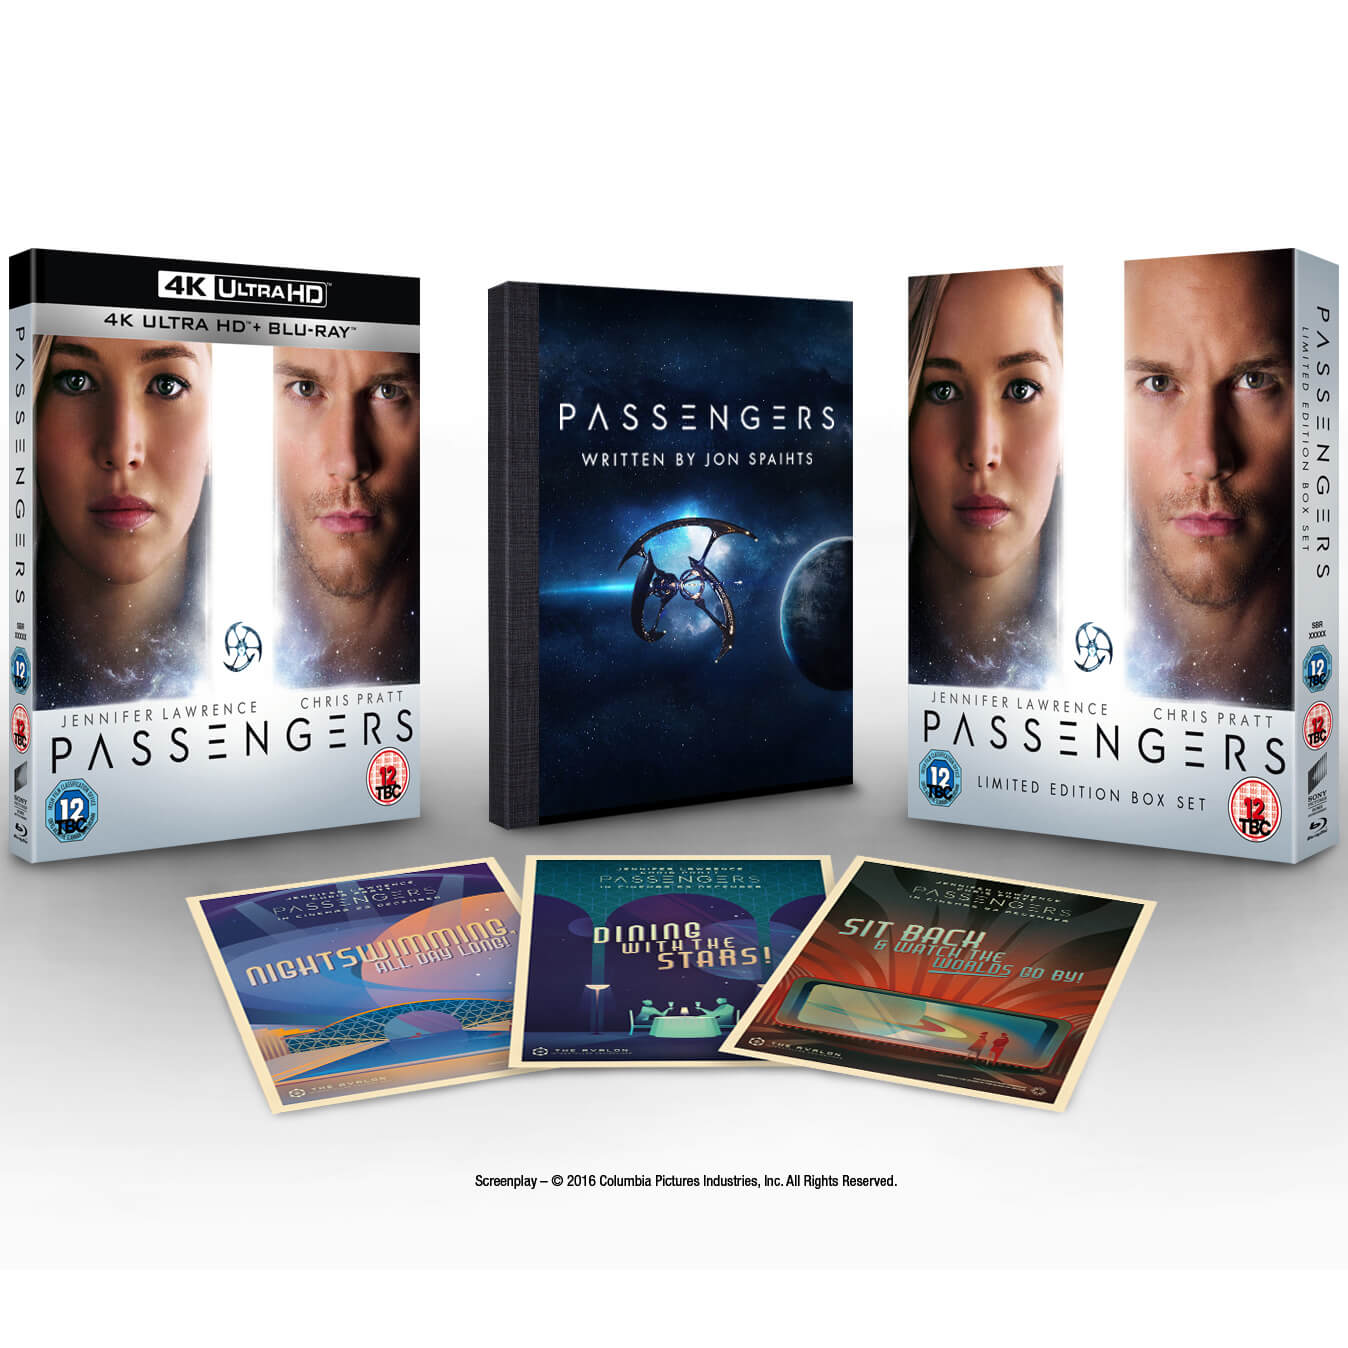 Passengers - 4K Ultra HD (Limited Edition Boxset With Script & Postcards)